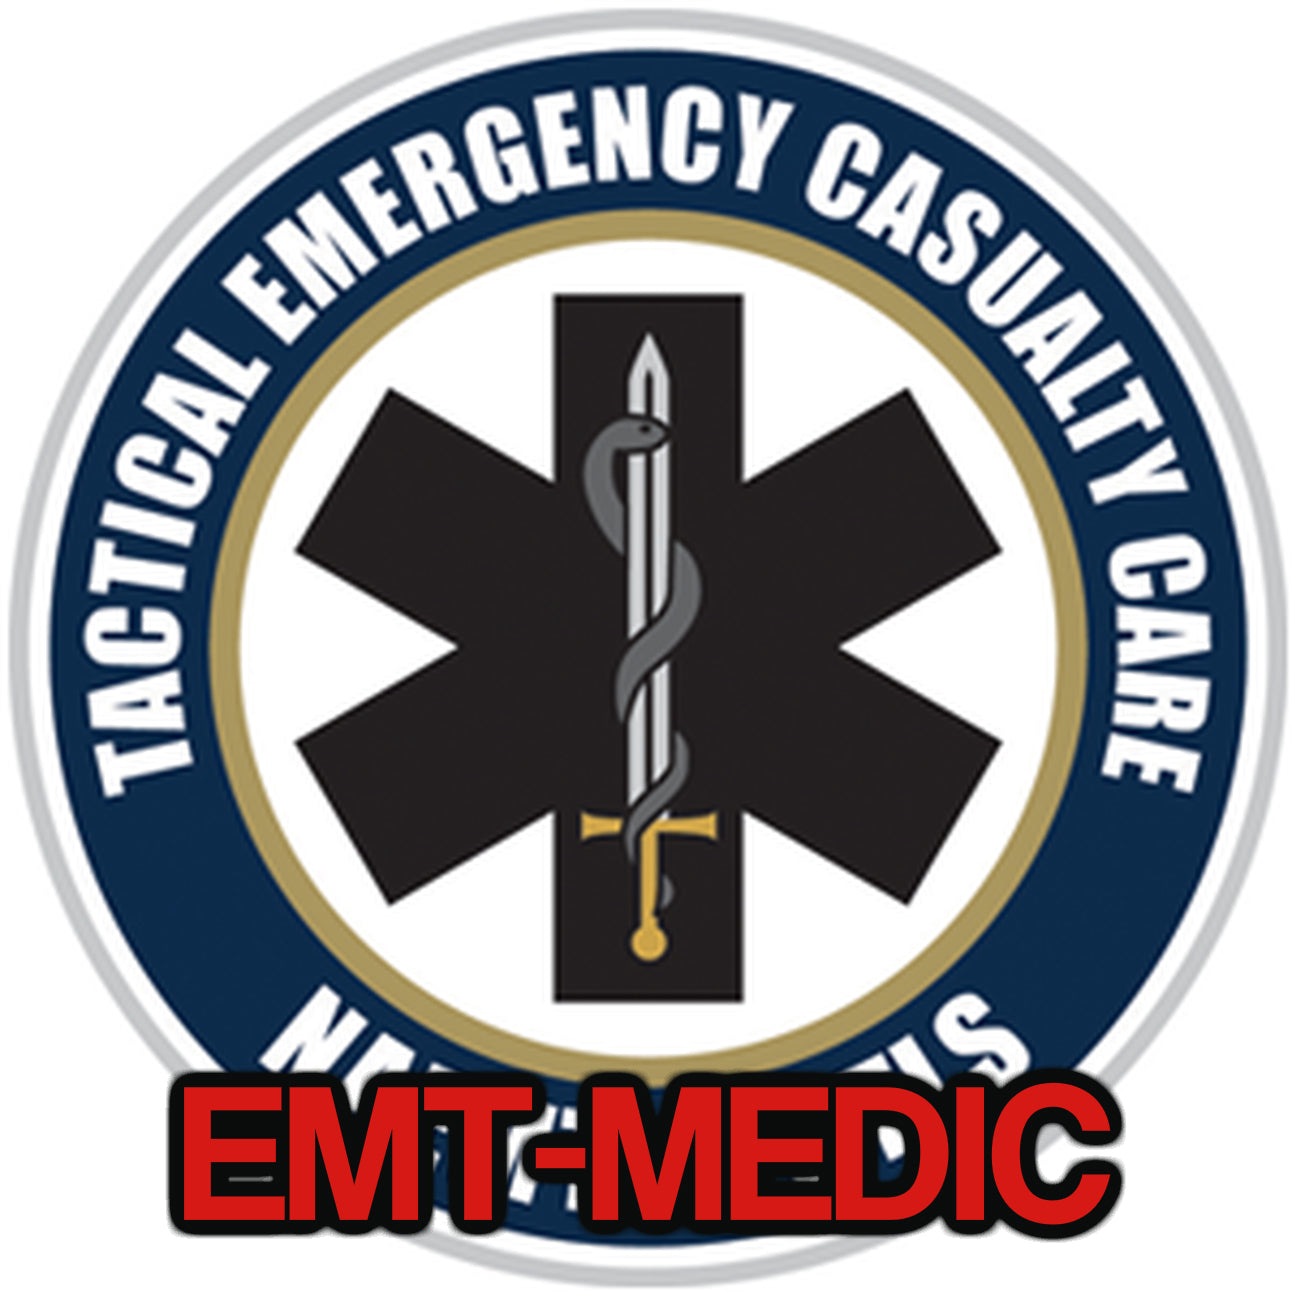 Tactical Emergency Casualty Care Provider Course BLS ALS